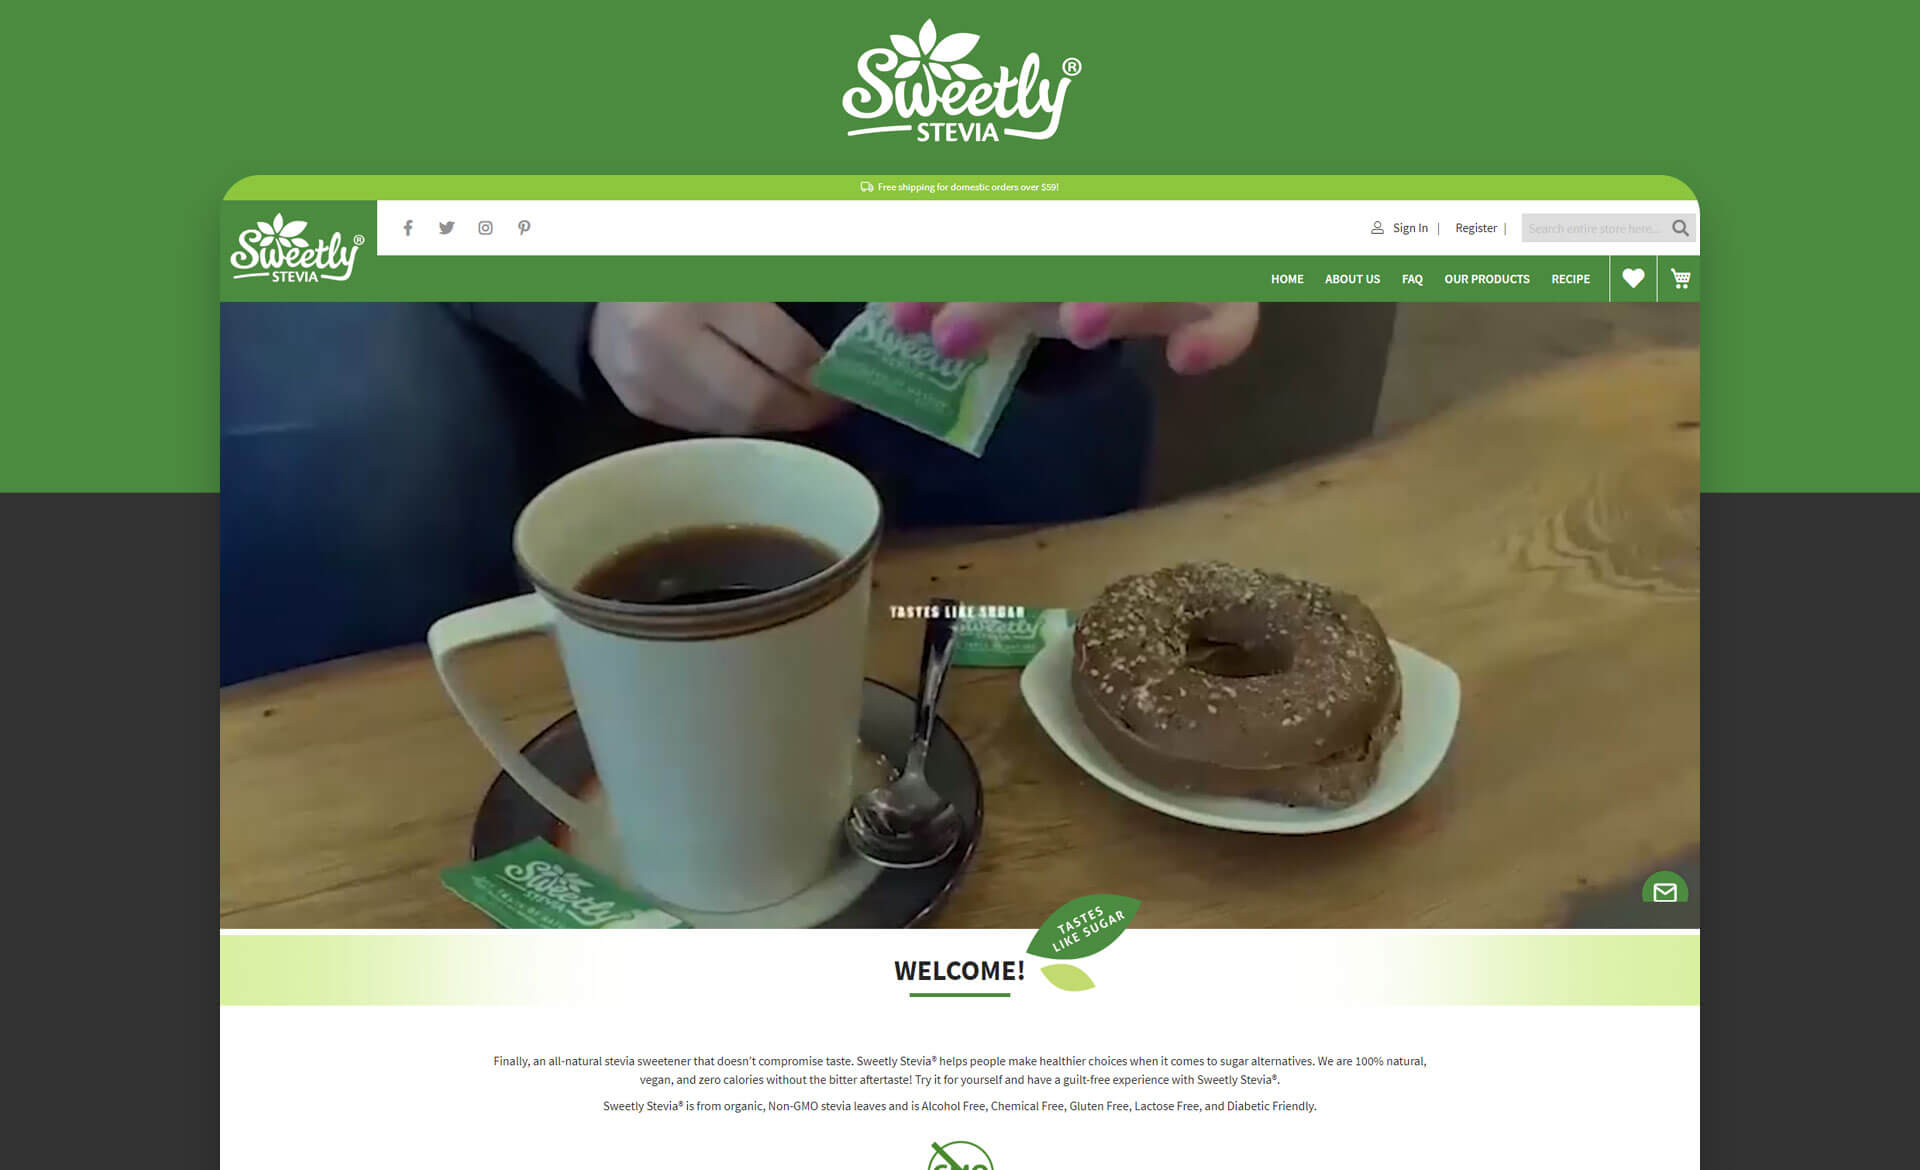 Sweetly Stevia USA